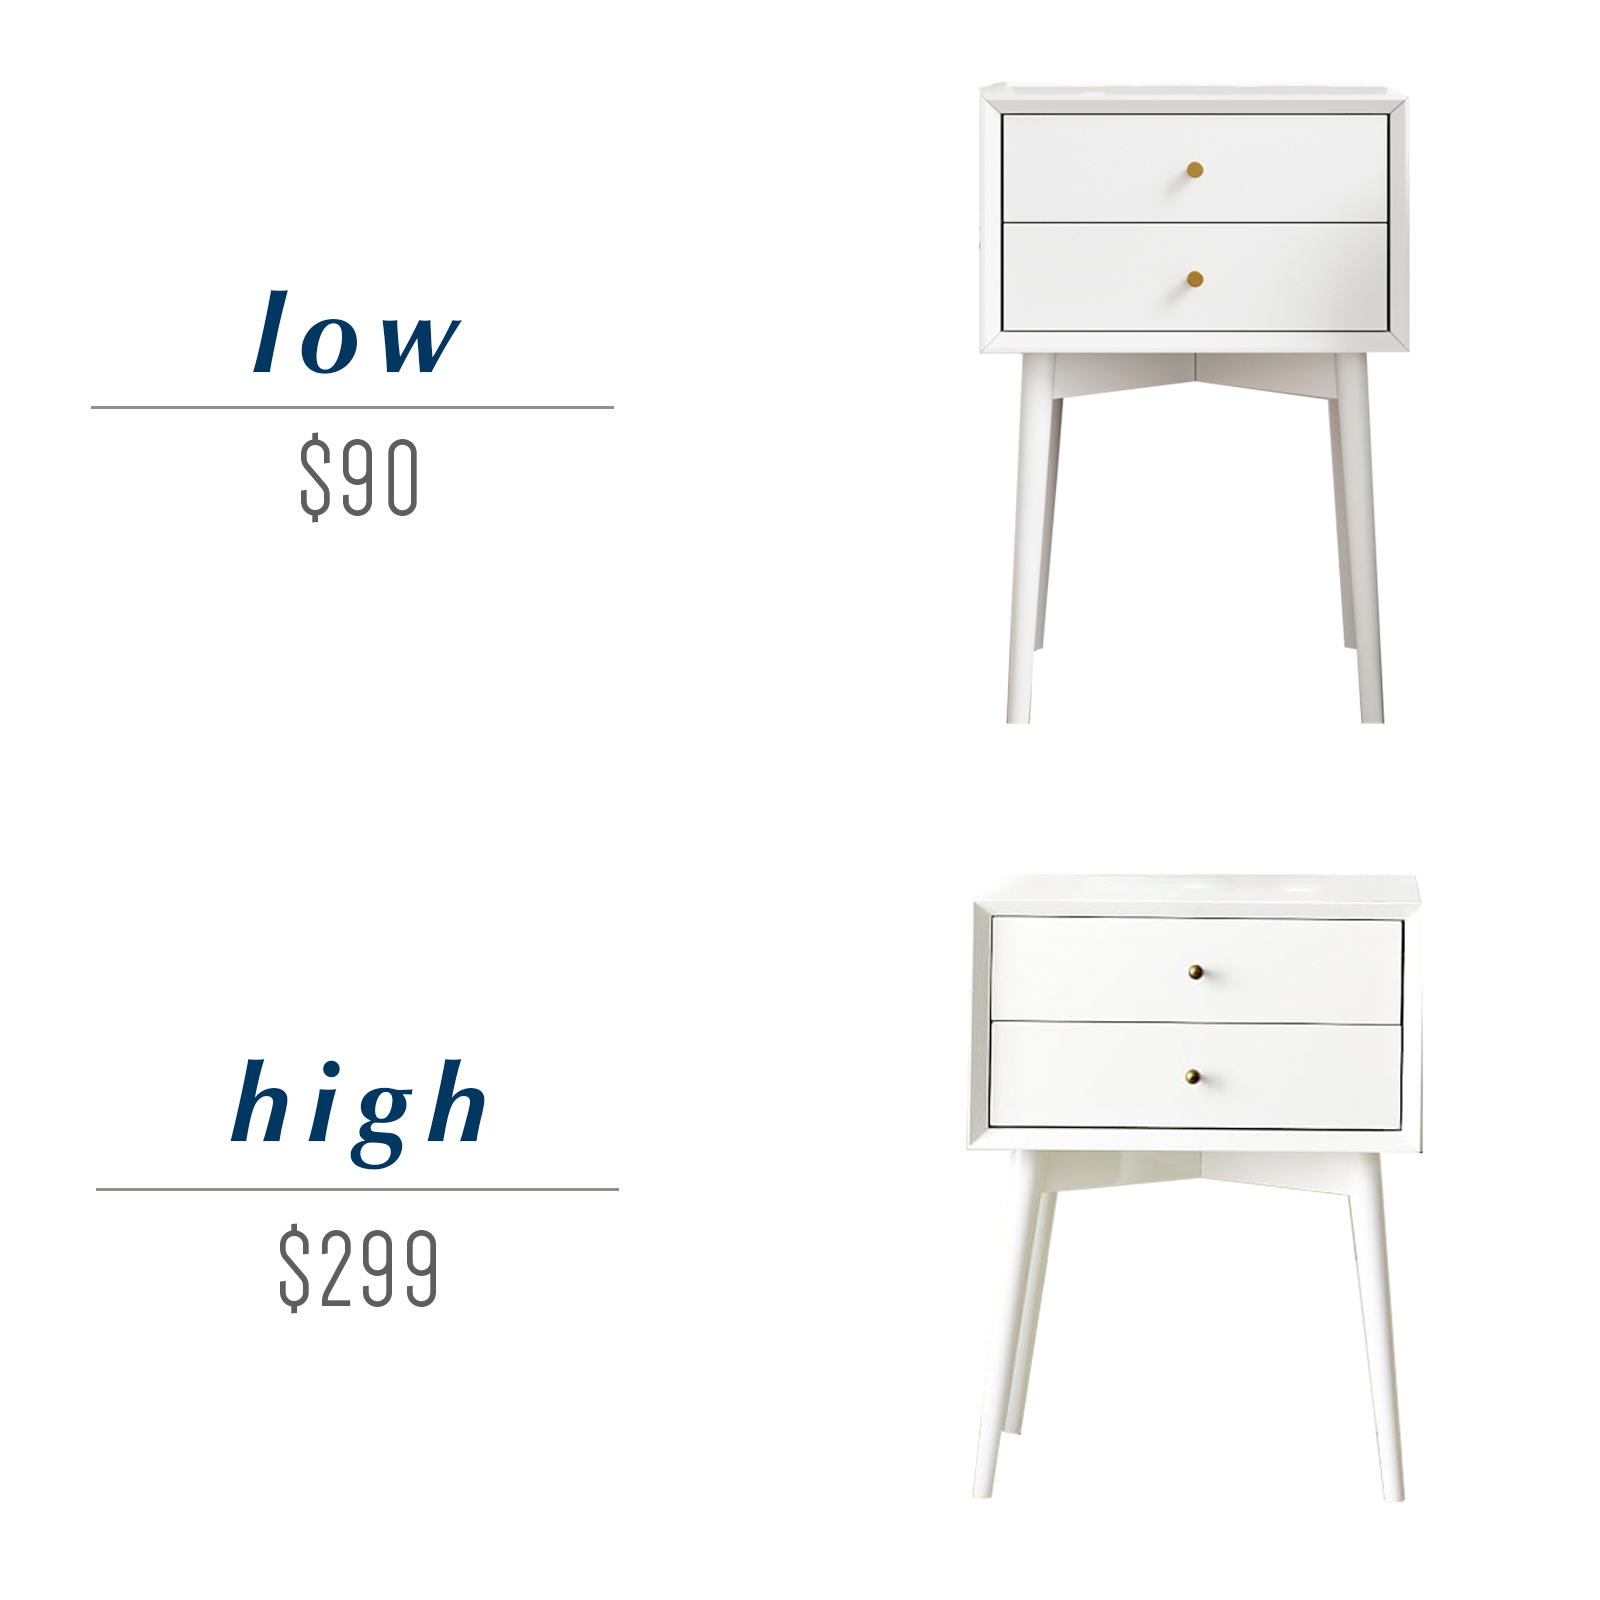 Get the look for less or decide to splurge! Come see the budget-friendly and spend-worthy pieces of furniture in this blog post including the high/low sources for this white mid-century modern nightstand.